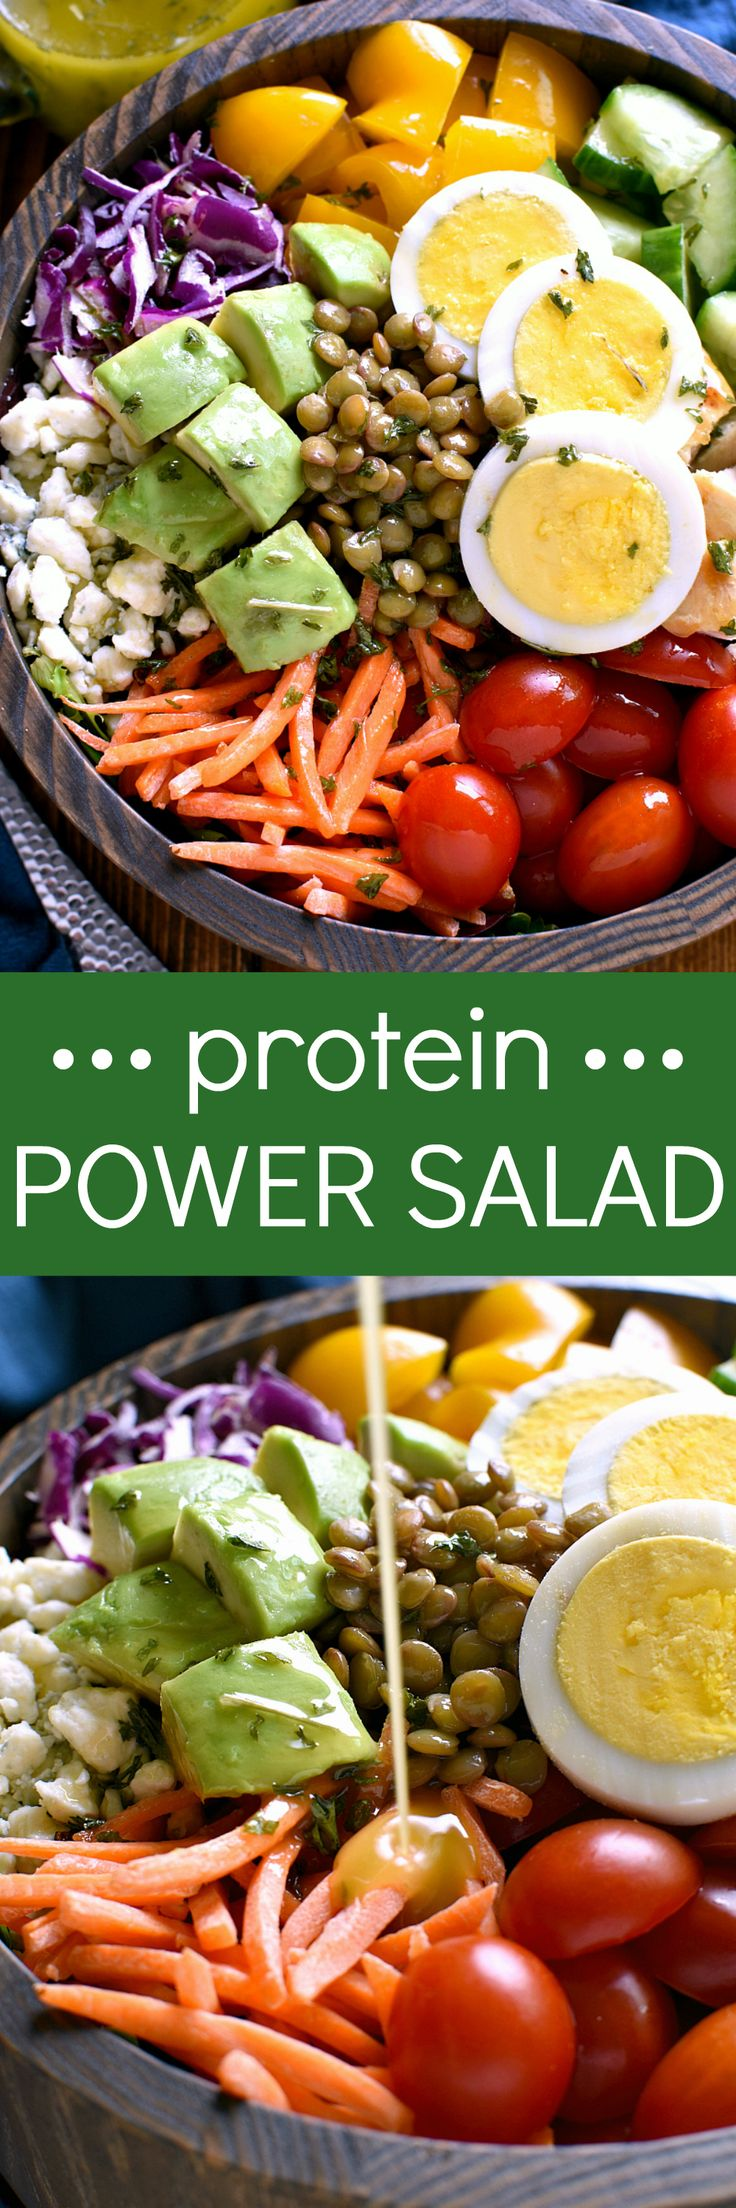 protein power salad power salad protein power high protein veggie ...